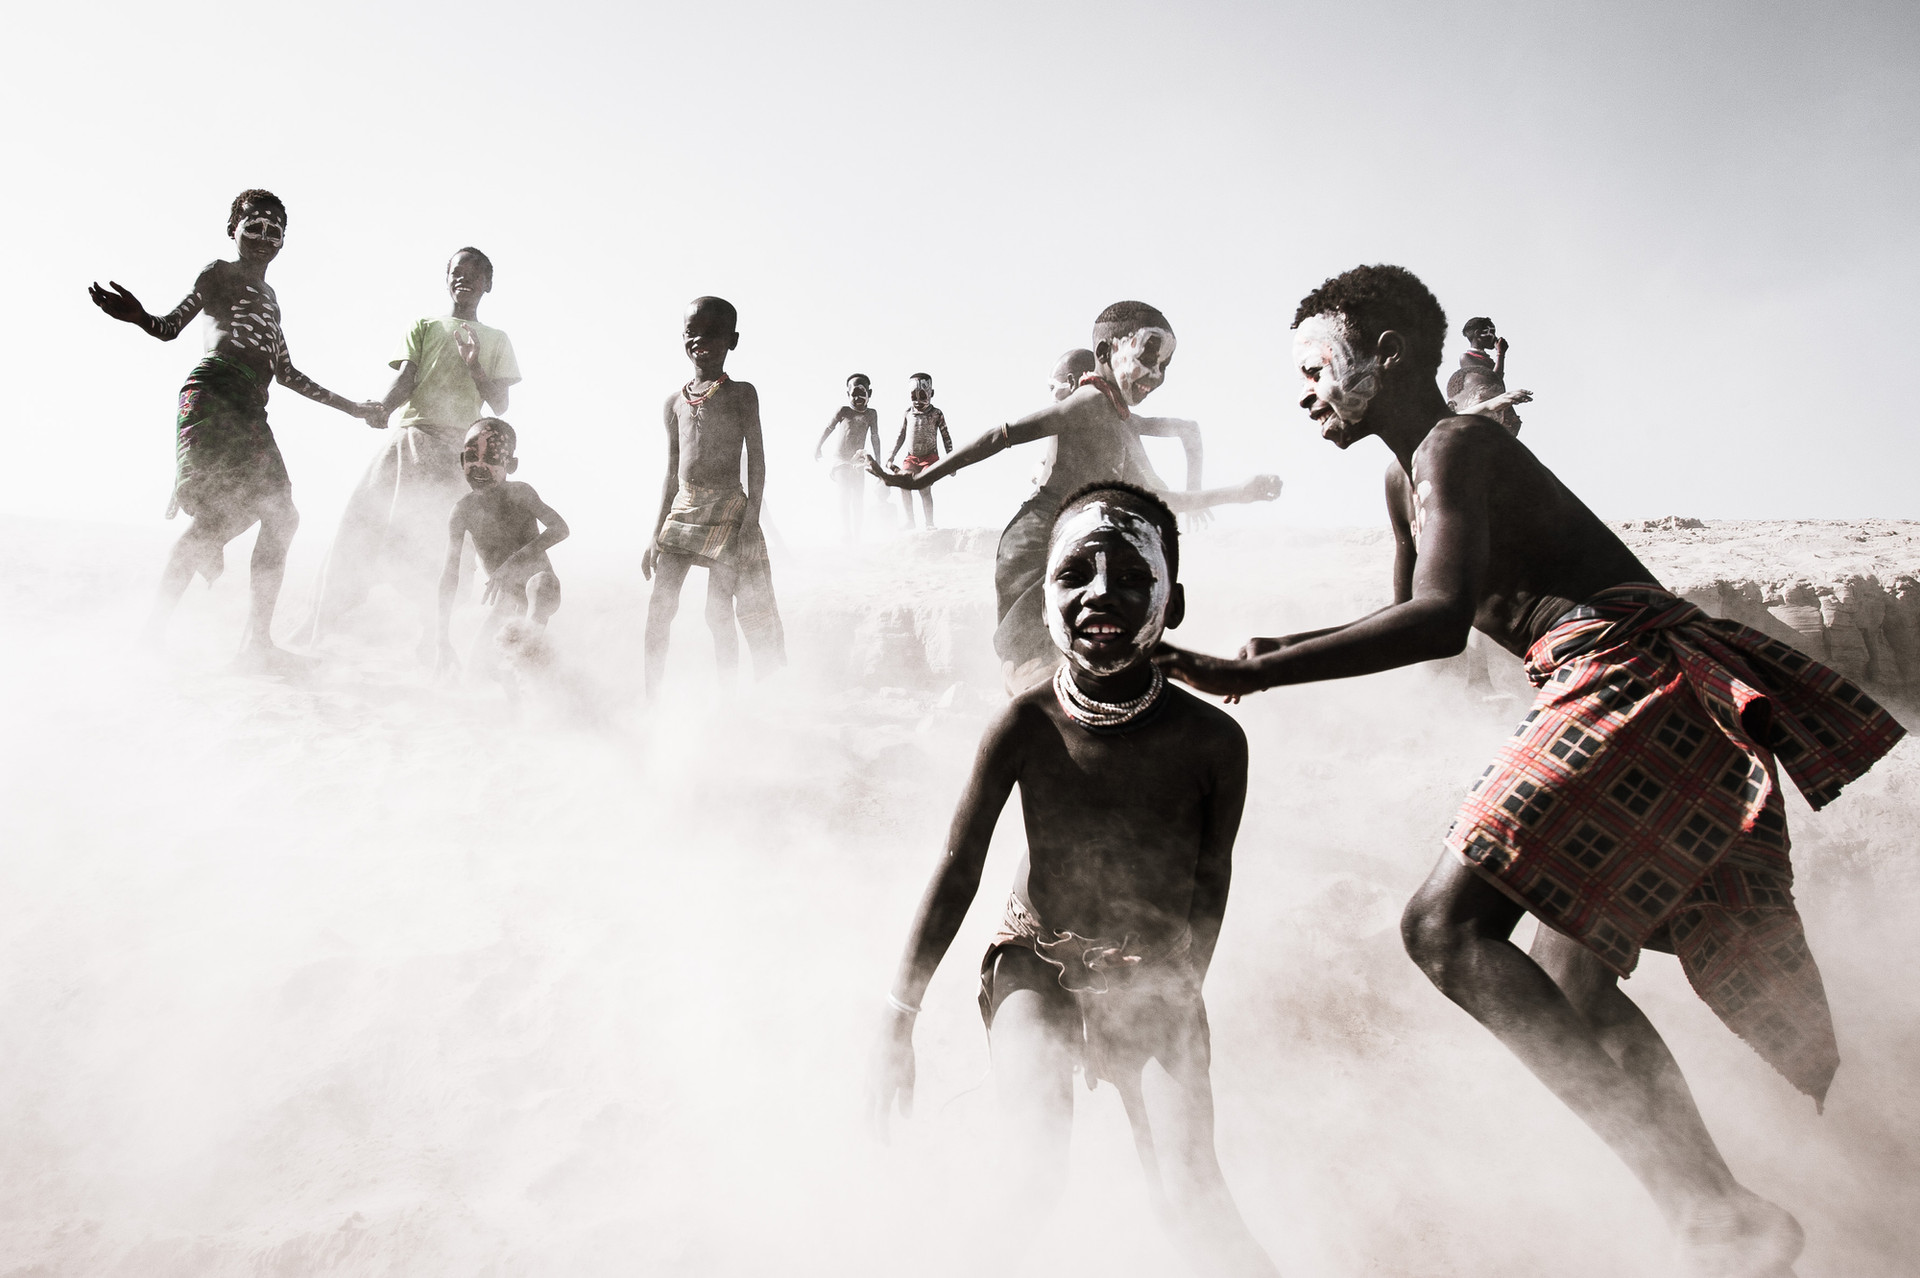 Pure bliss at the Omo Valley